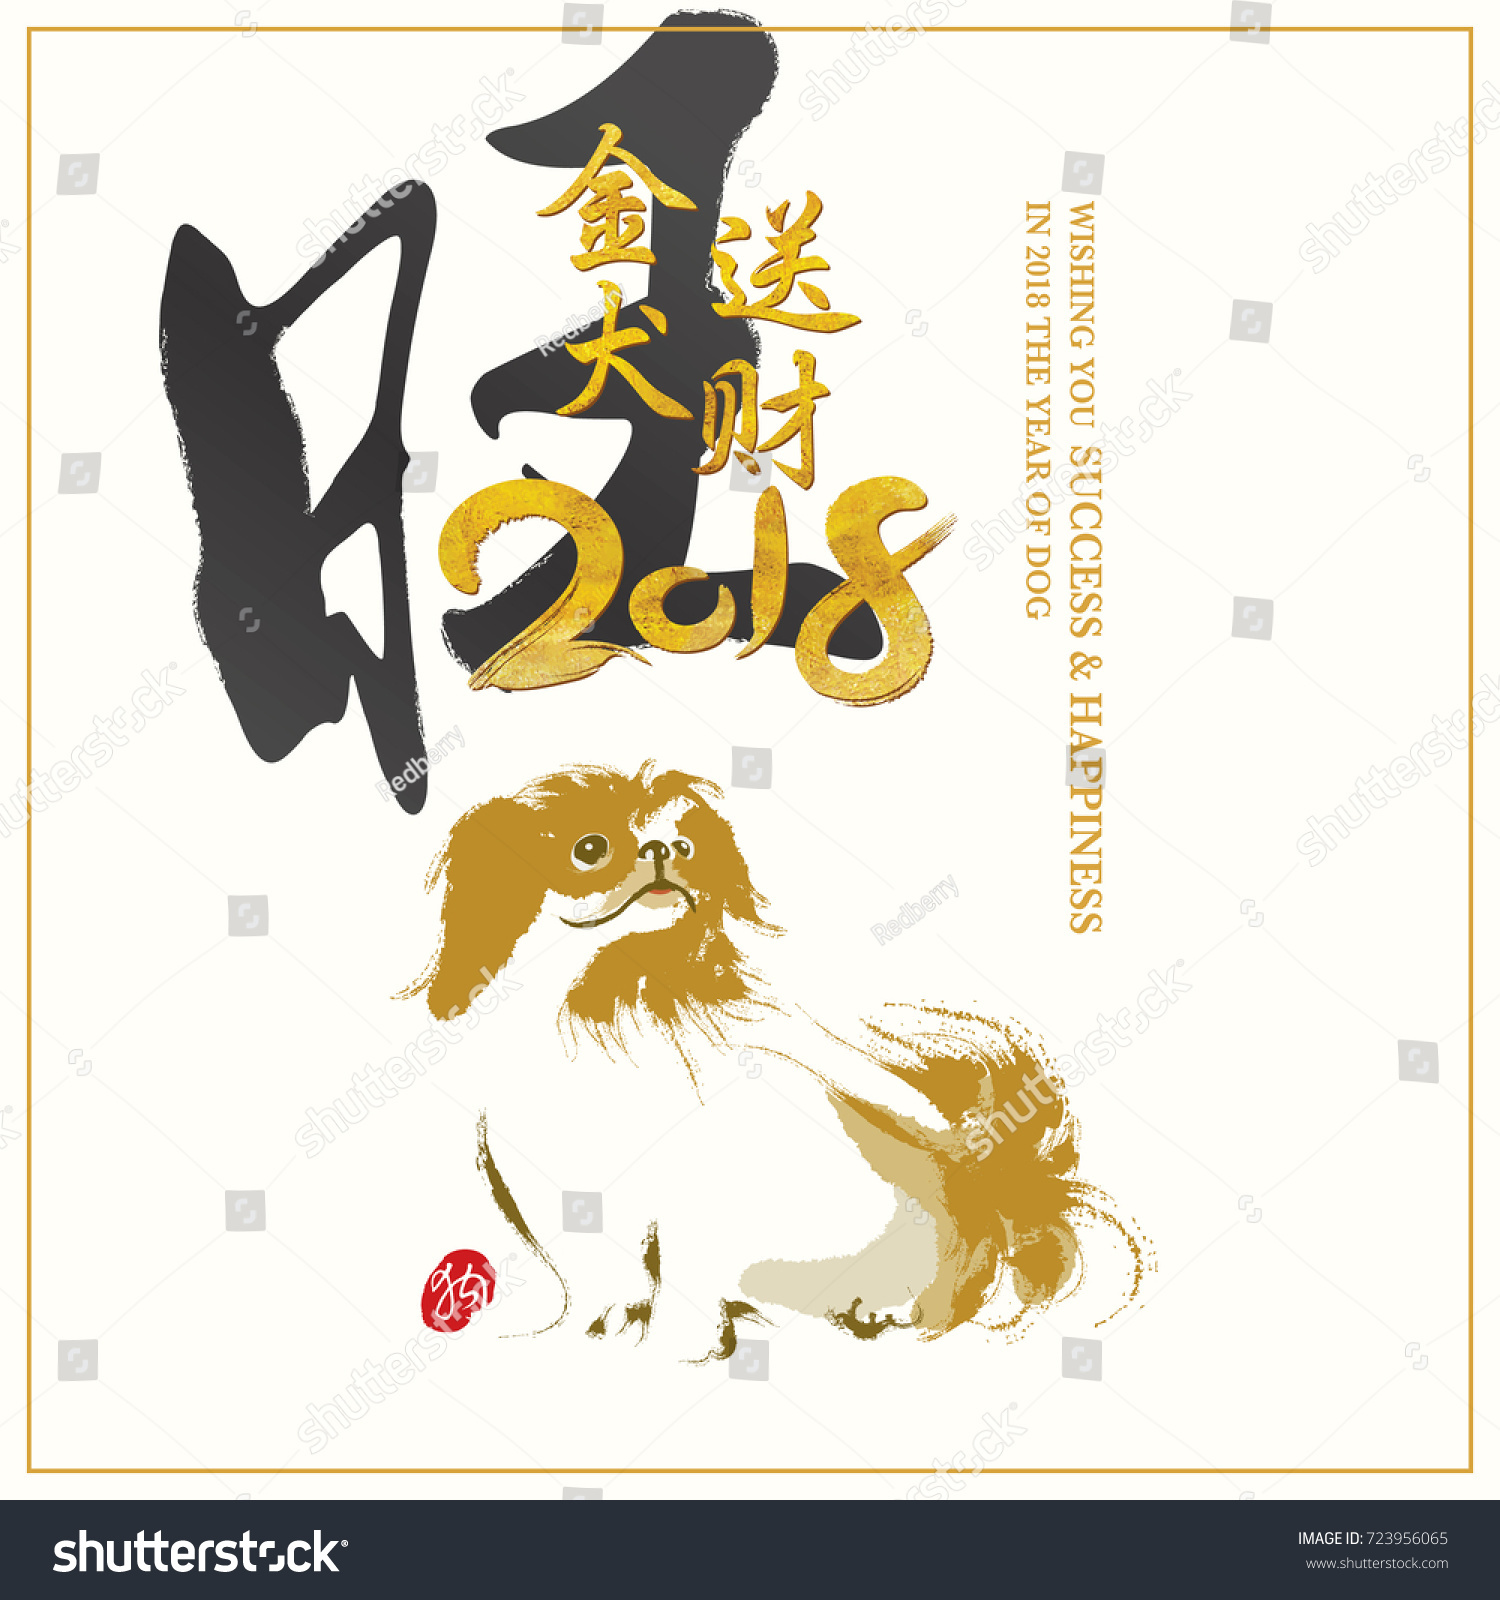 Chinese New Year 2018 Background Chinese Stock Vector (Royalty Free ...